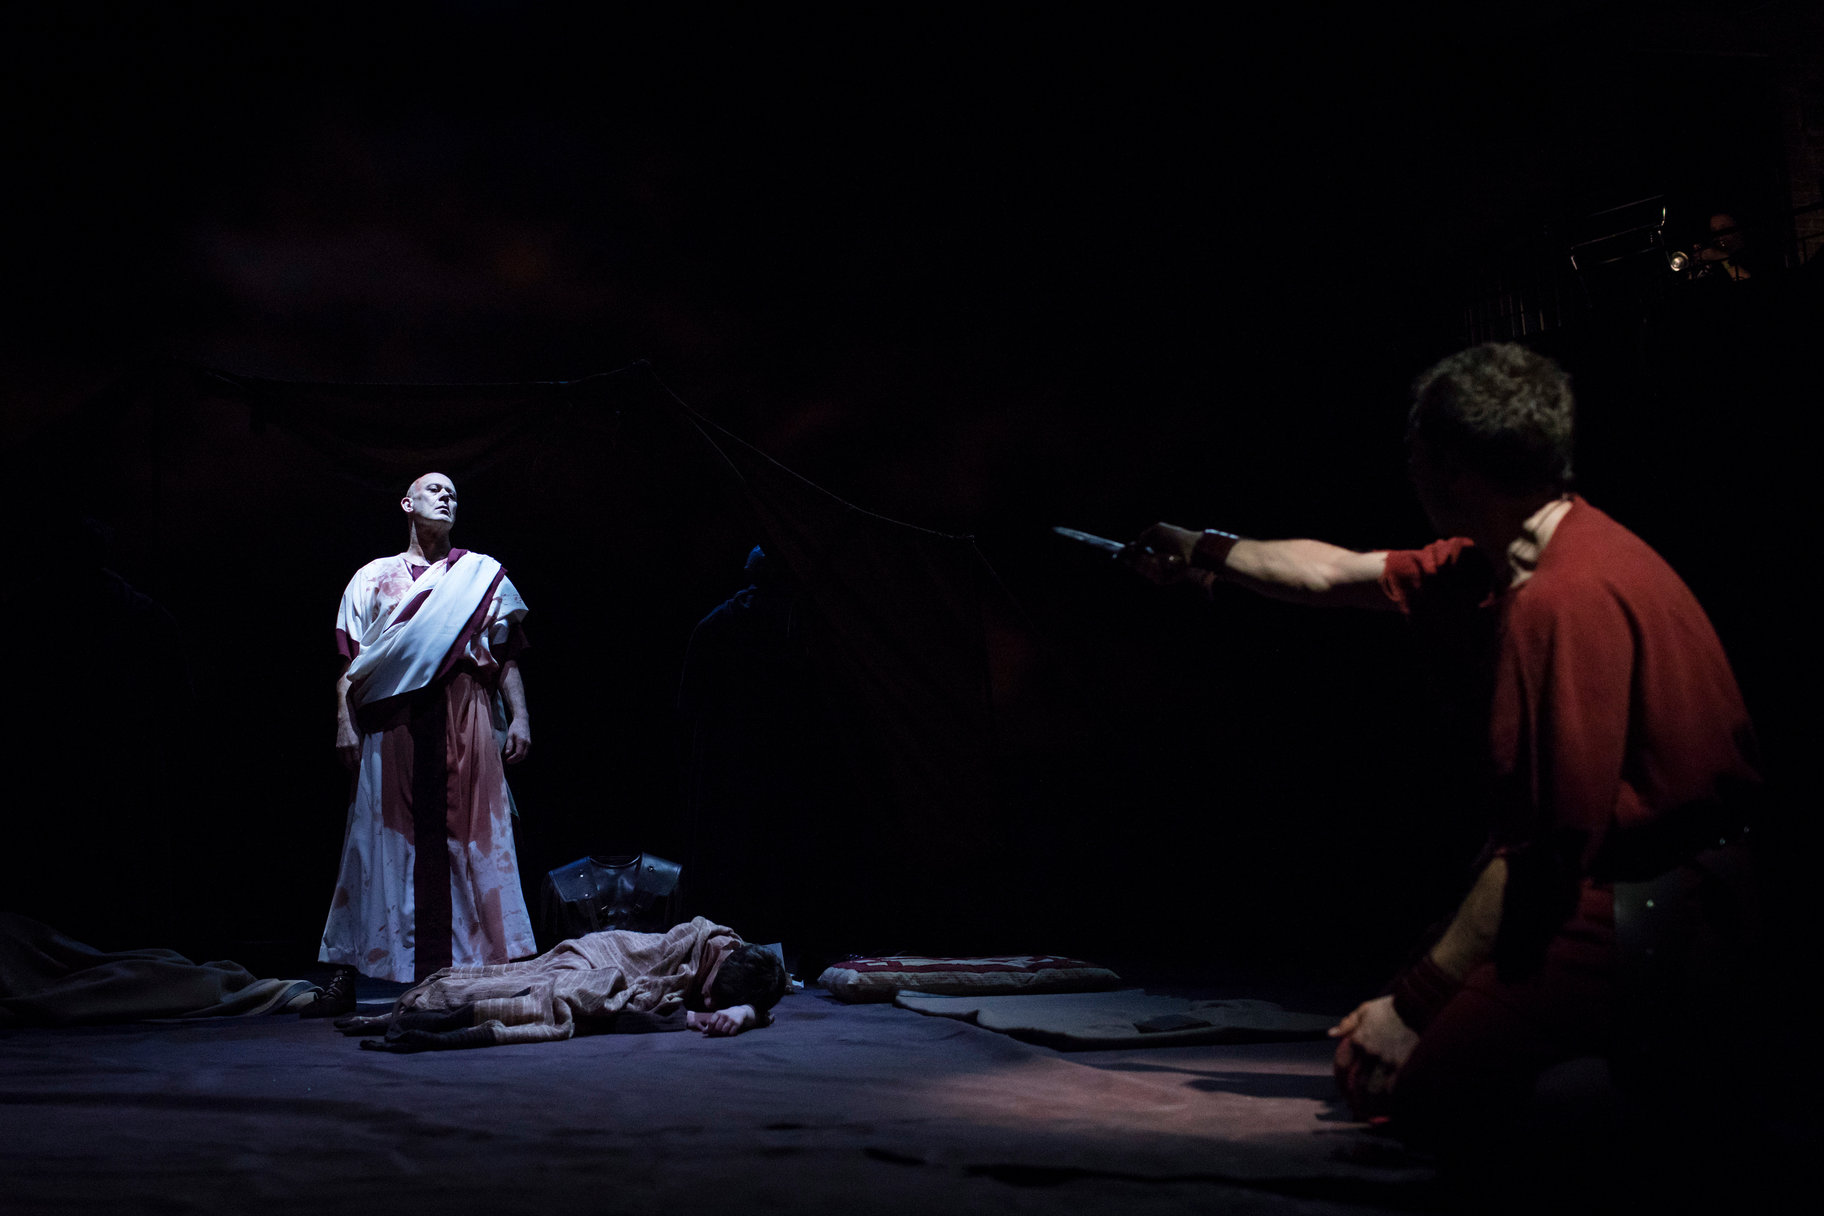 Julius Caesar's ghost appears to Brutus. Brutus holds a knife out towards the ghost.